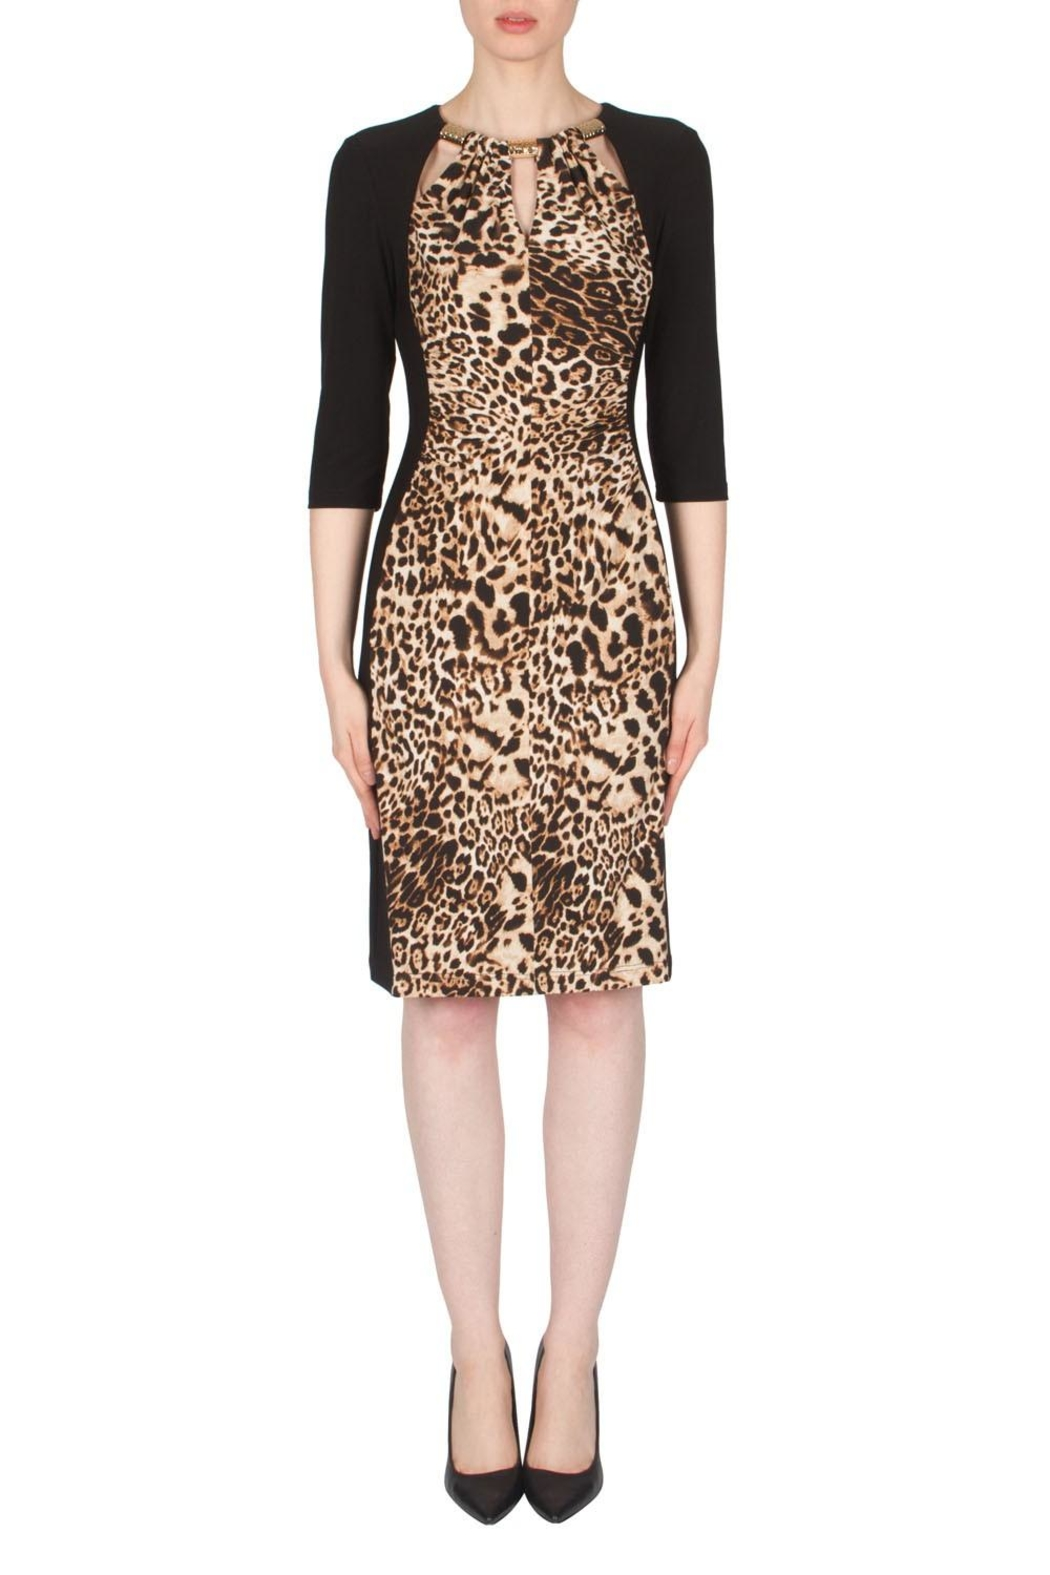 Joseph Ribkoff Leopard Print Dress - Main Image